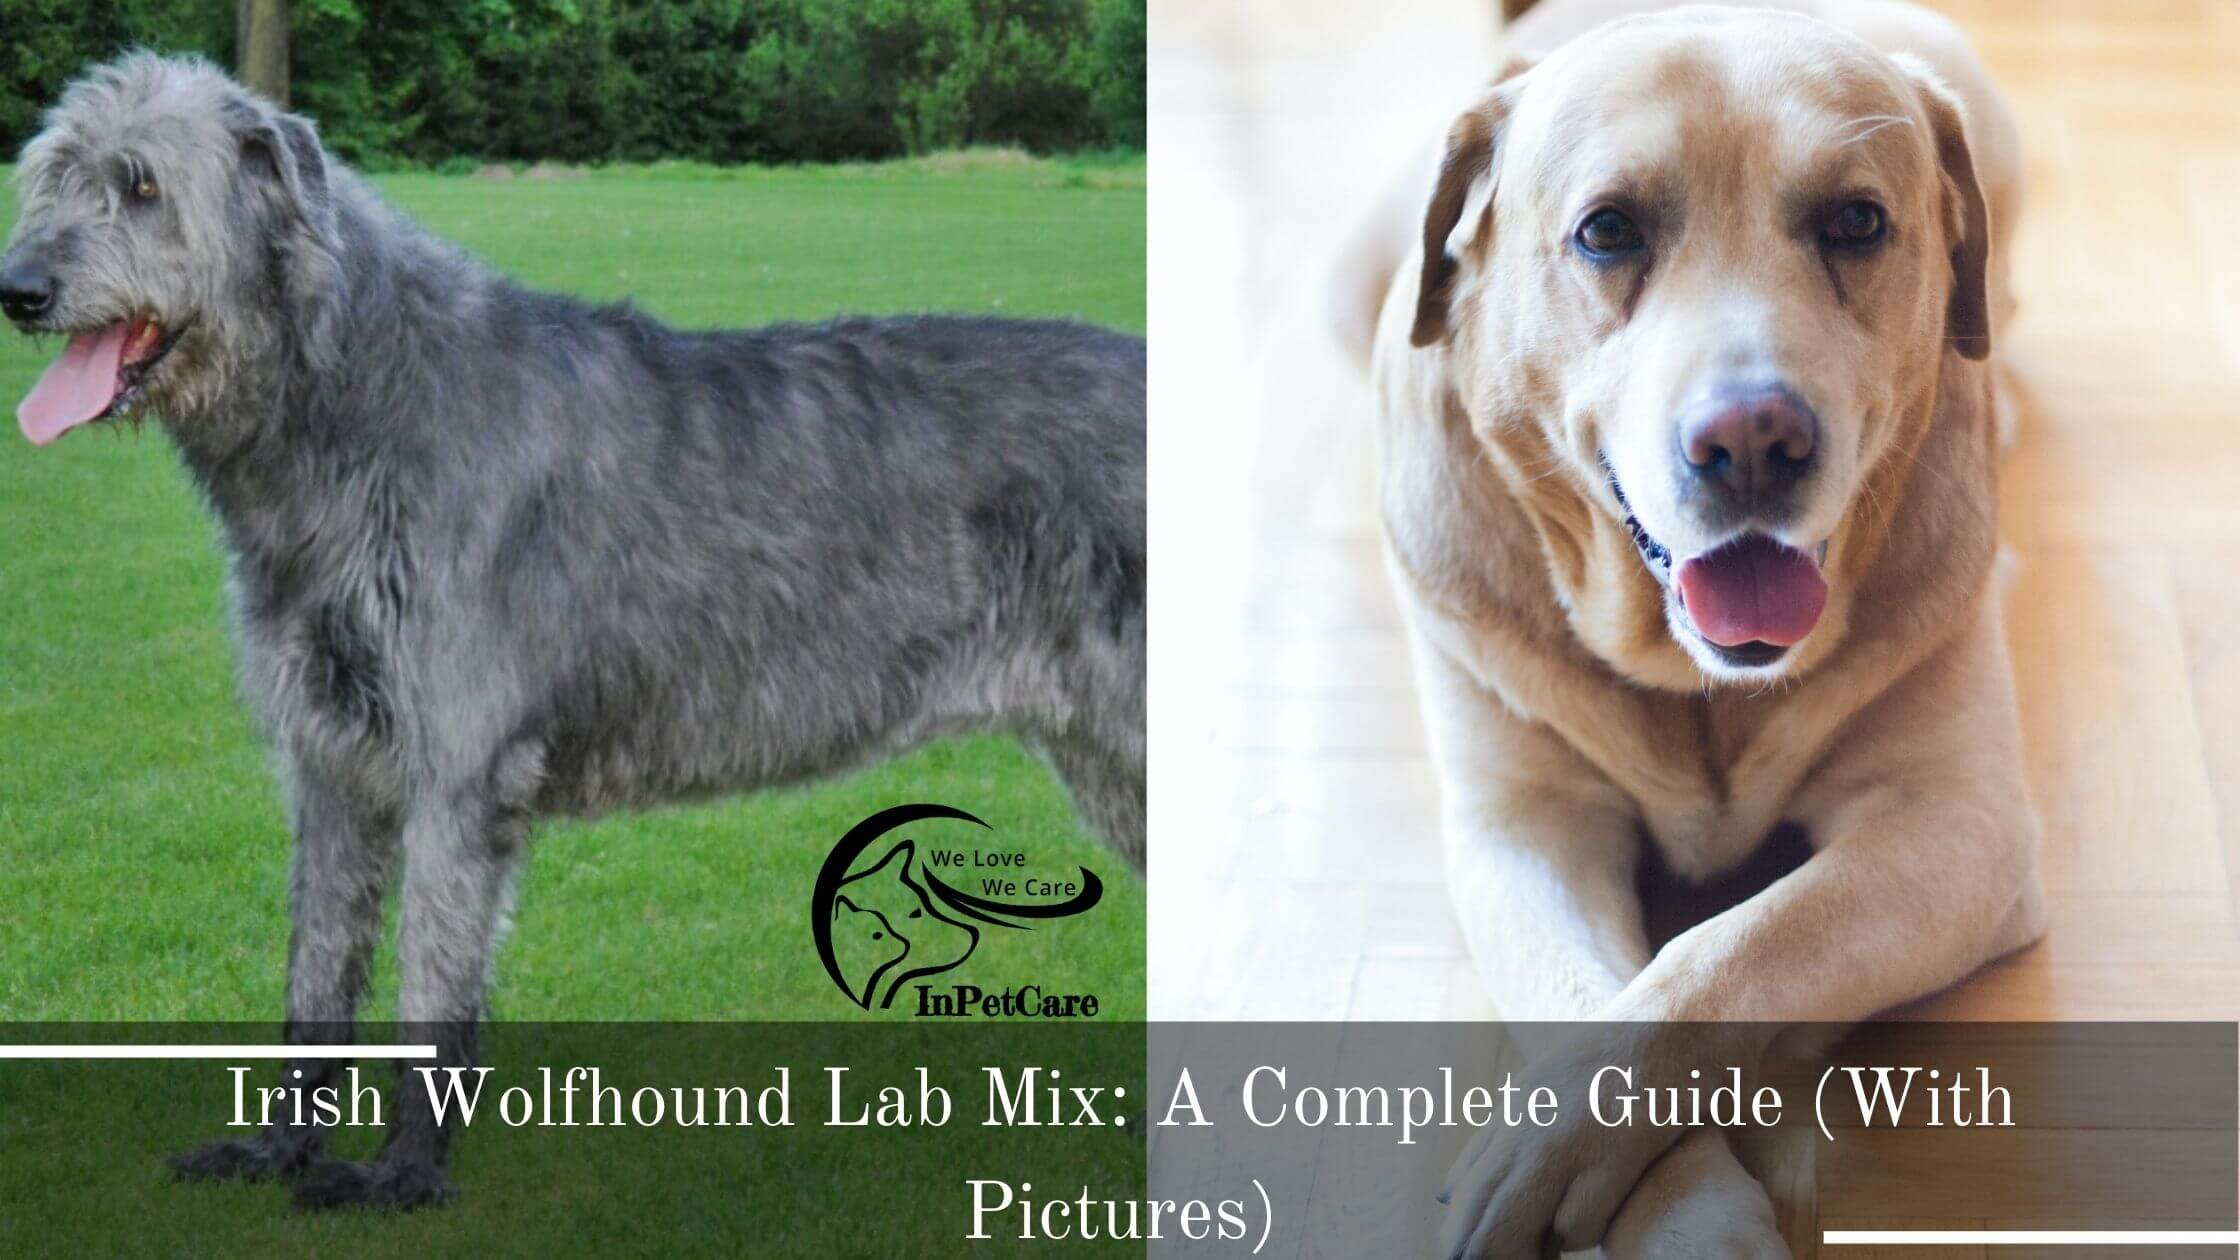 Irish Wolfhound Lab Mix: A Complete Guide (With Pictures)